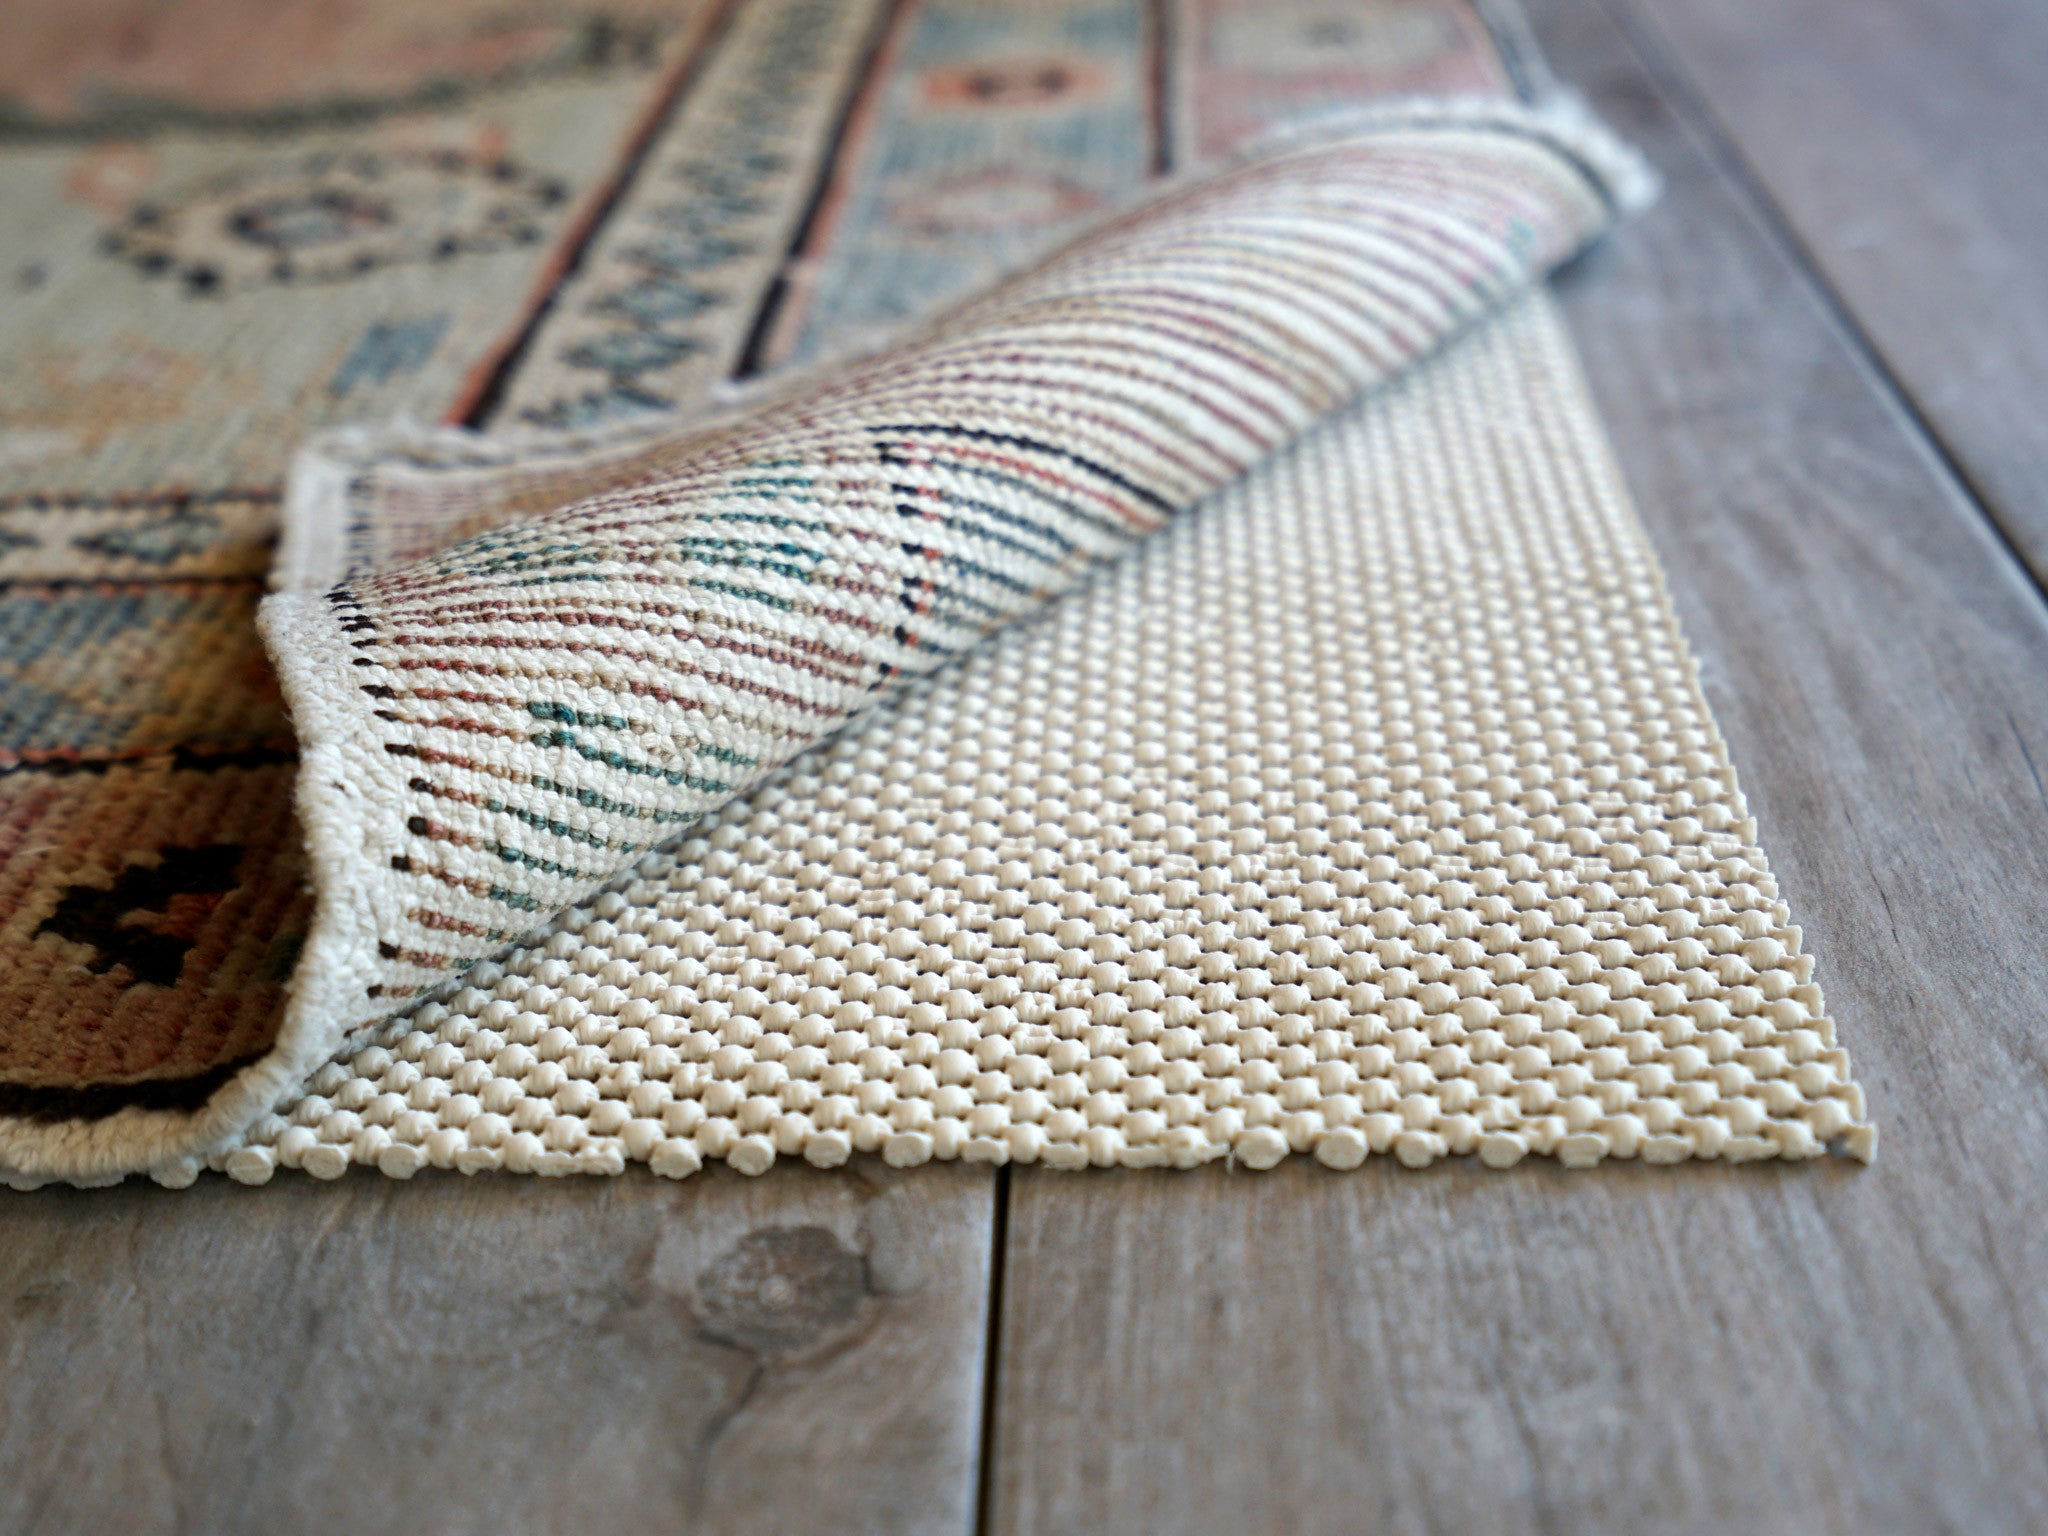 Non Slip Area Rug Pad 5 X 8 Protect Floors Extra Strong Grip And Thick Padding